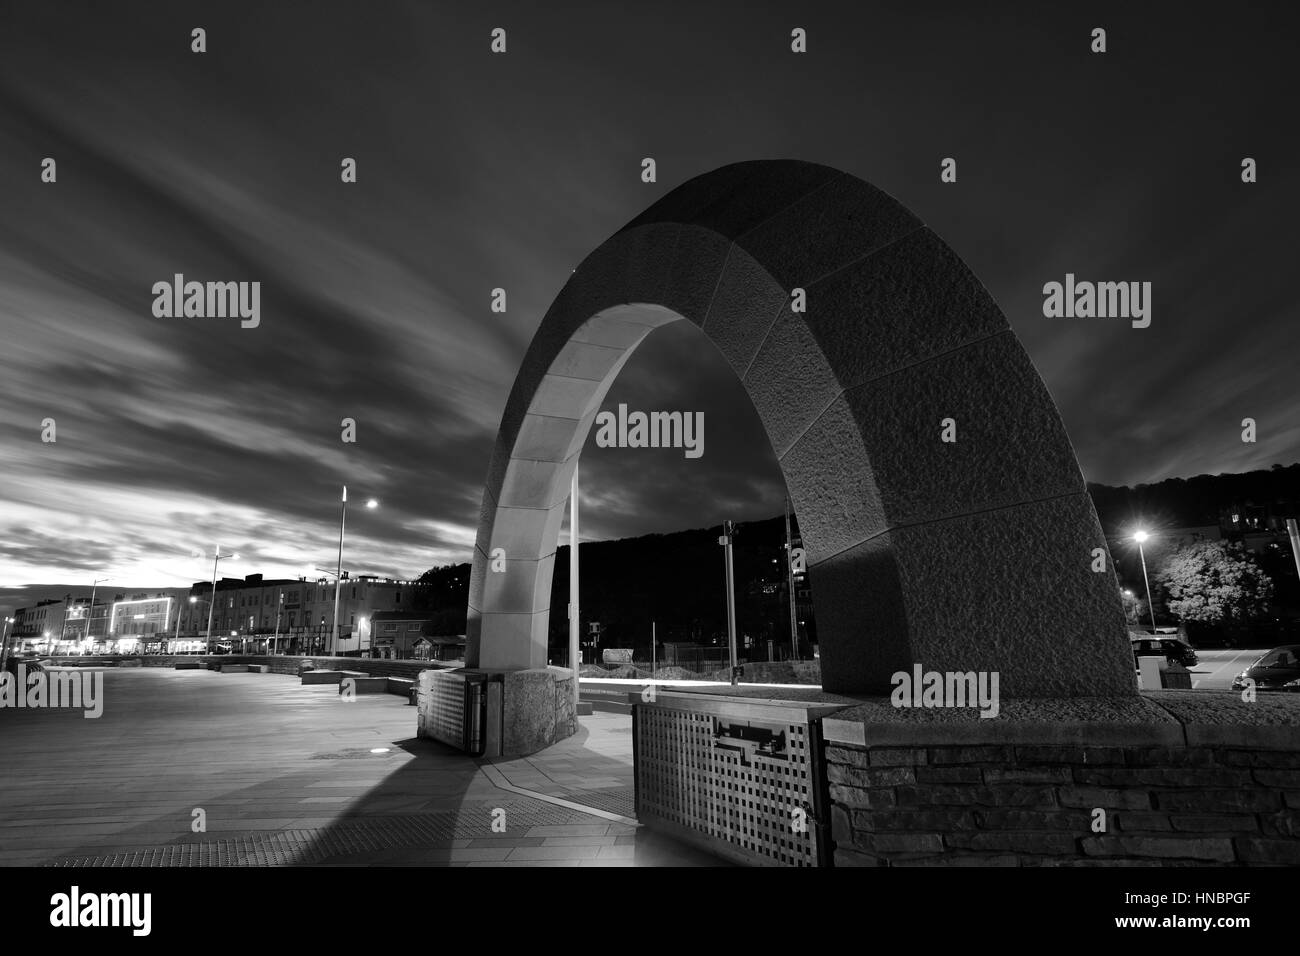 Summer, June, July, Stone Arch Sculpture at night, Weston Super Mare, Bristol Channel, Somerset County, England, - Stock Image